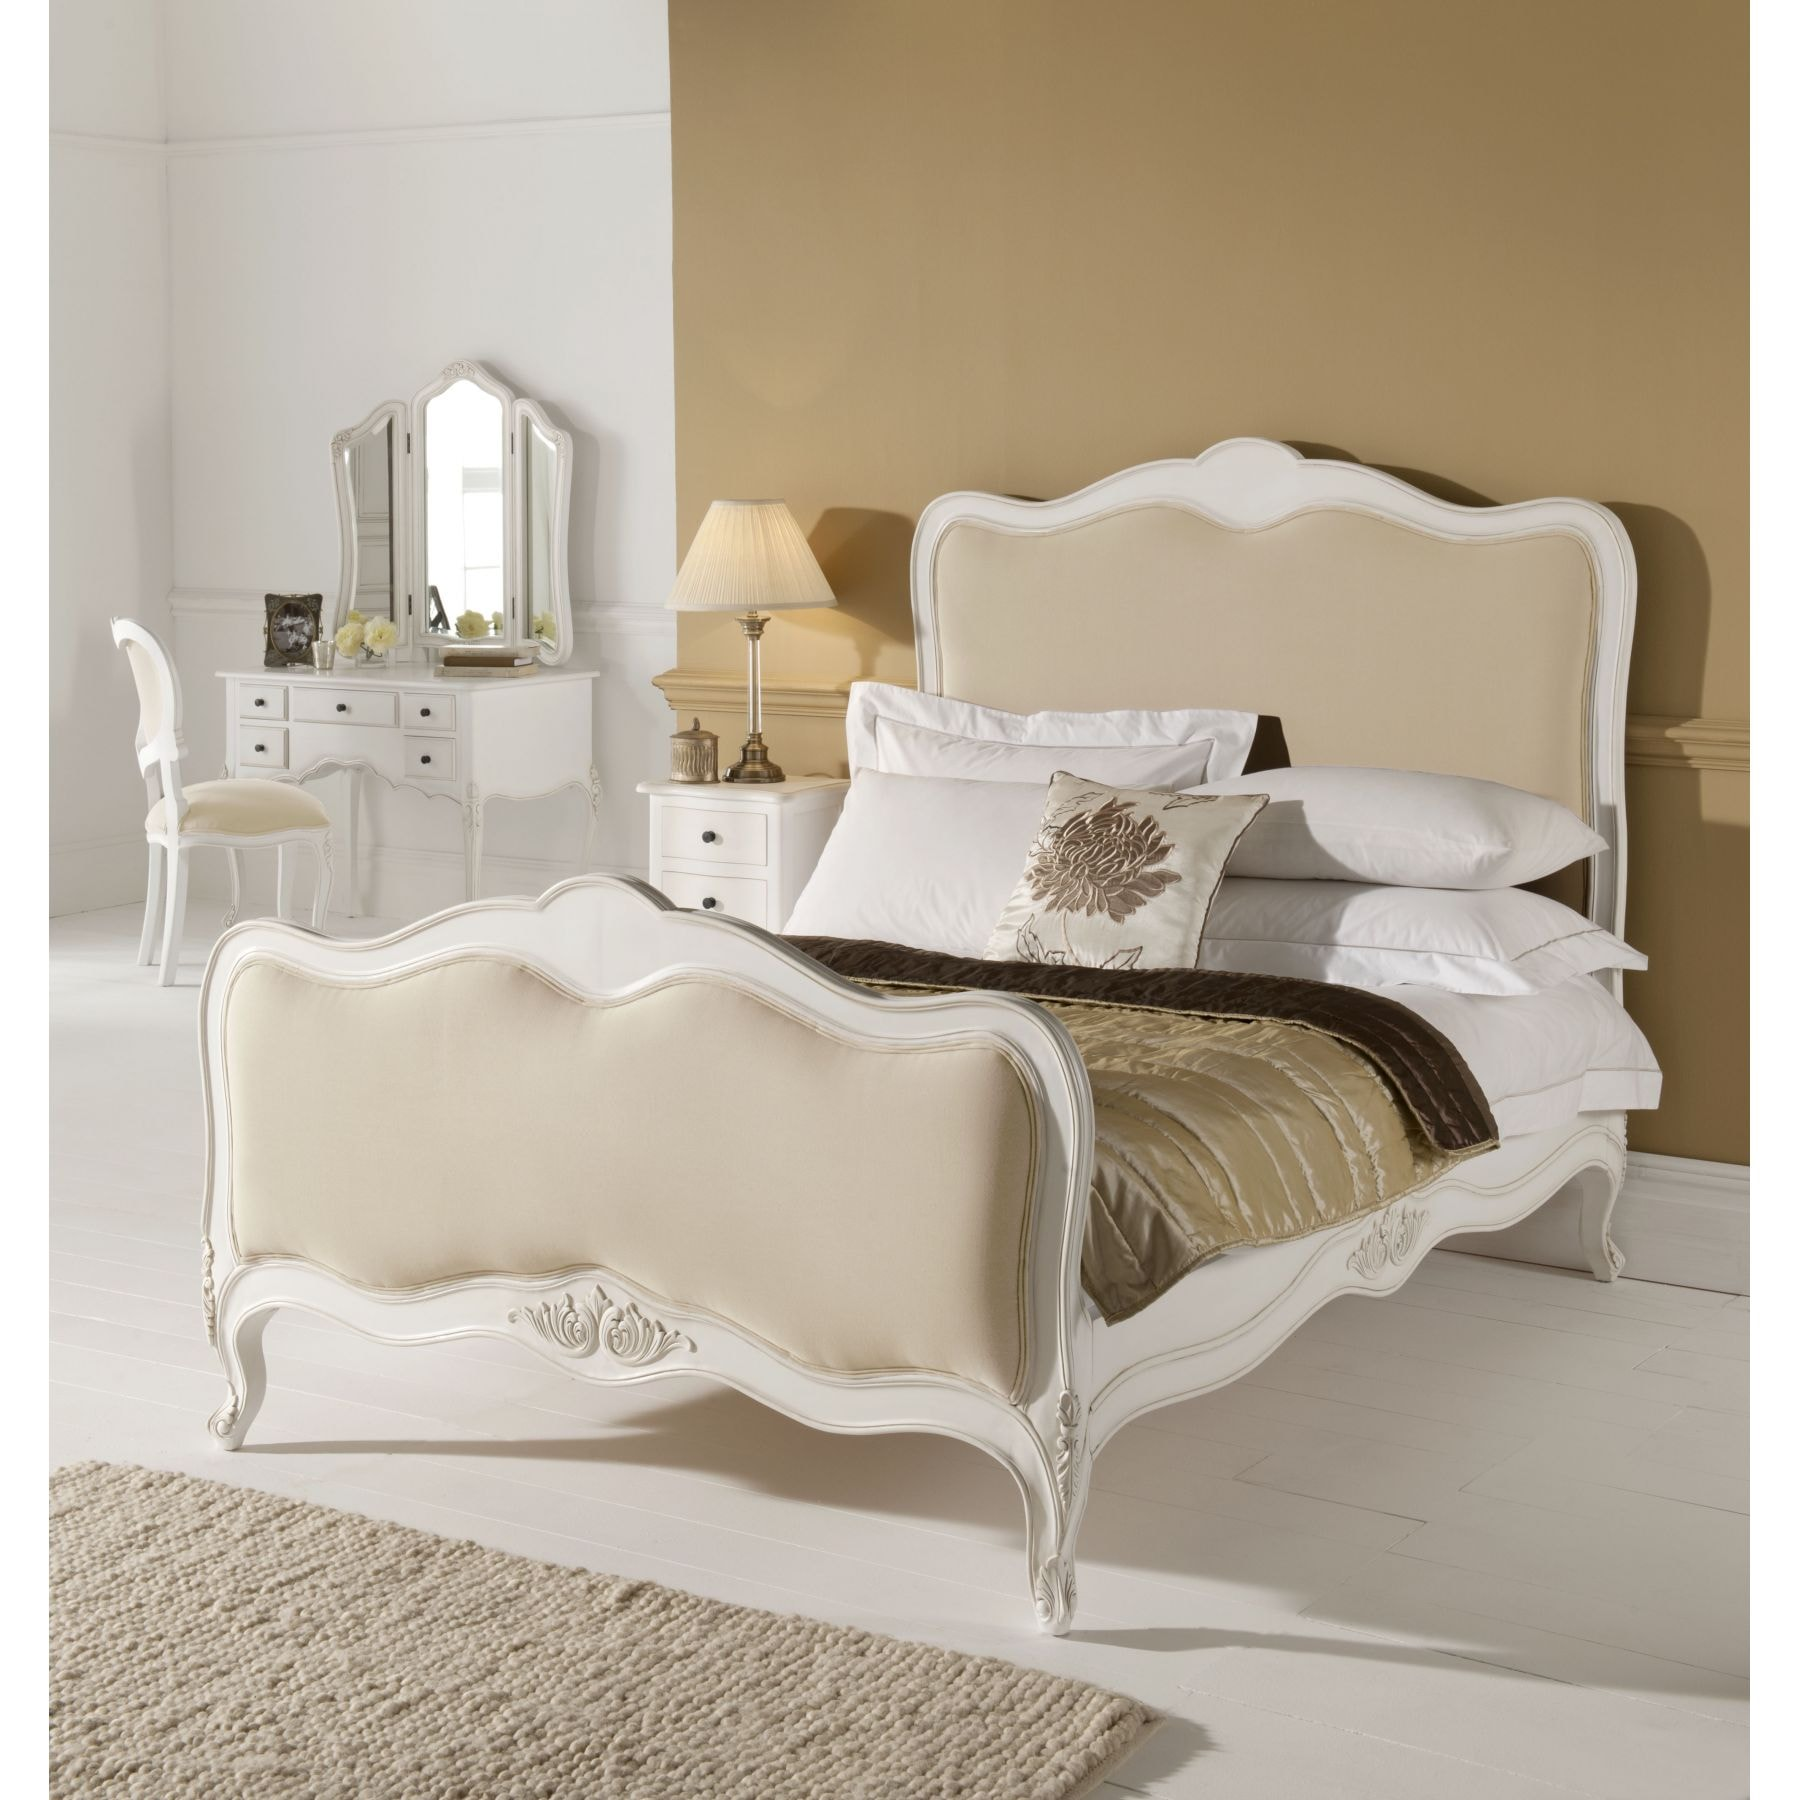 This Fantastic Paris Antique French Bed Works Wonderfully